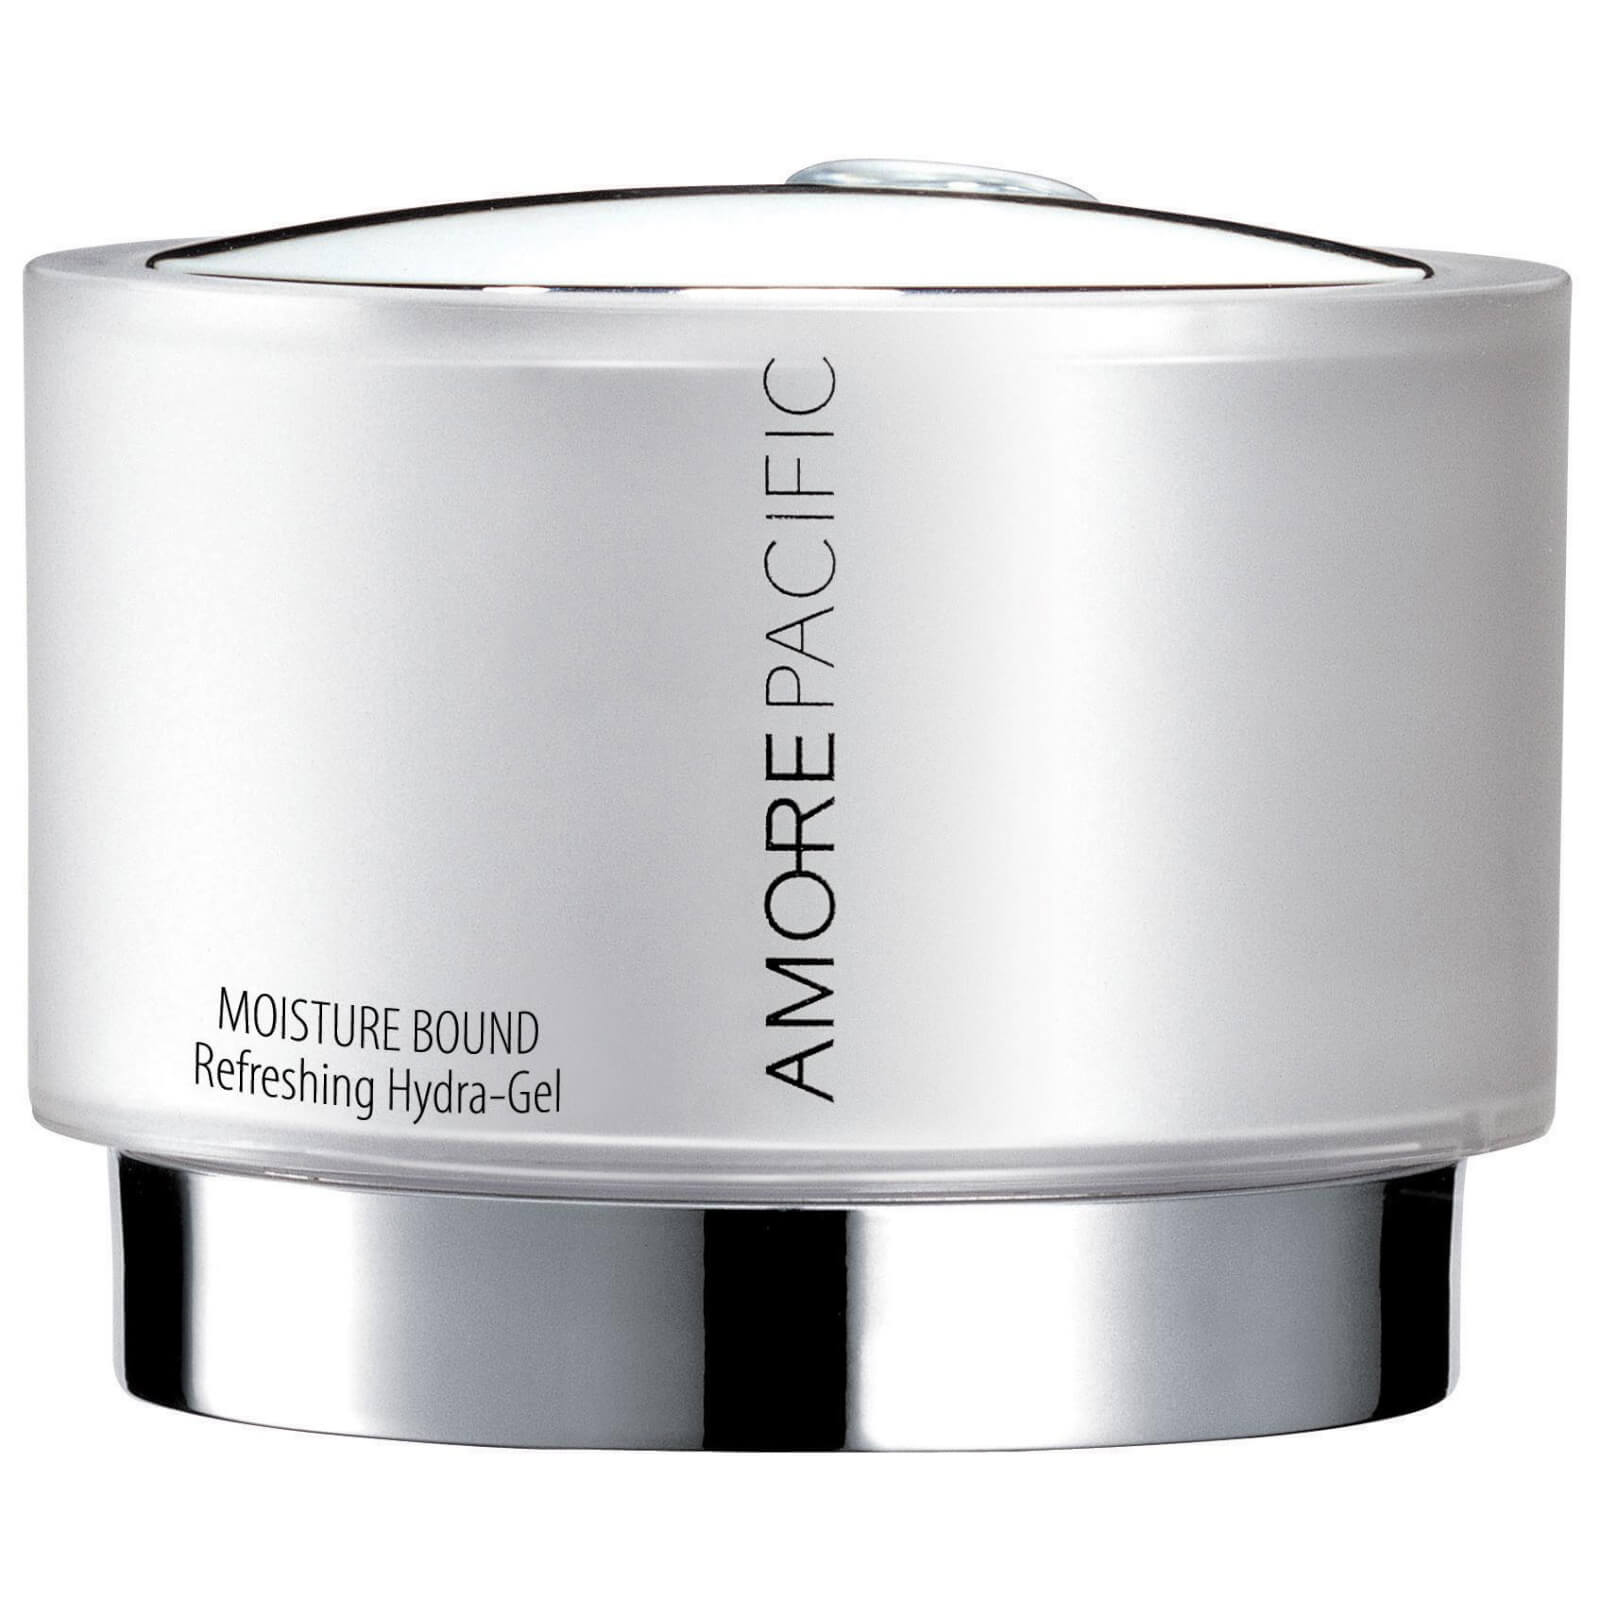 Amore Pacific Moisture Bound Refreshing Hydra-Gel